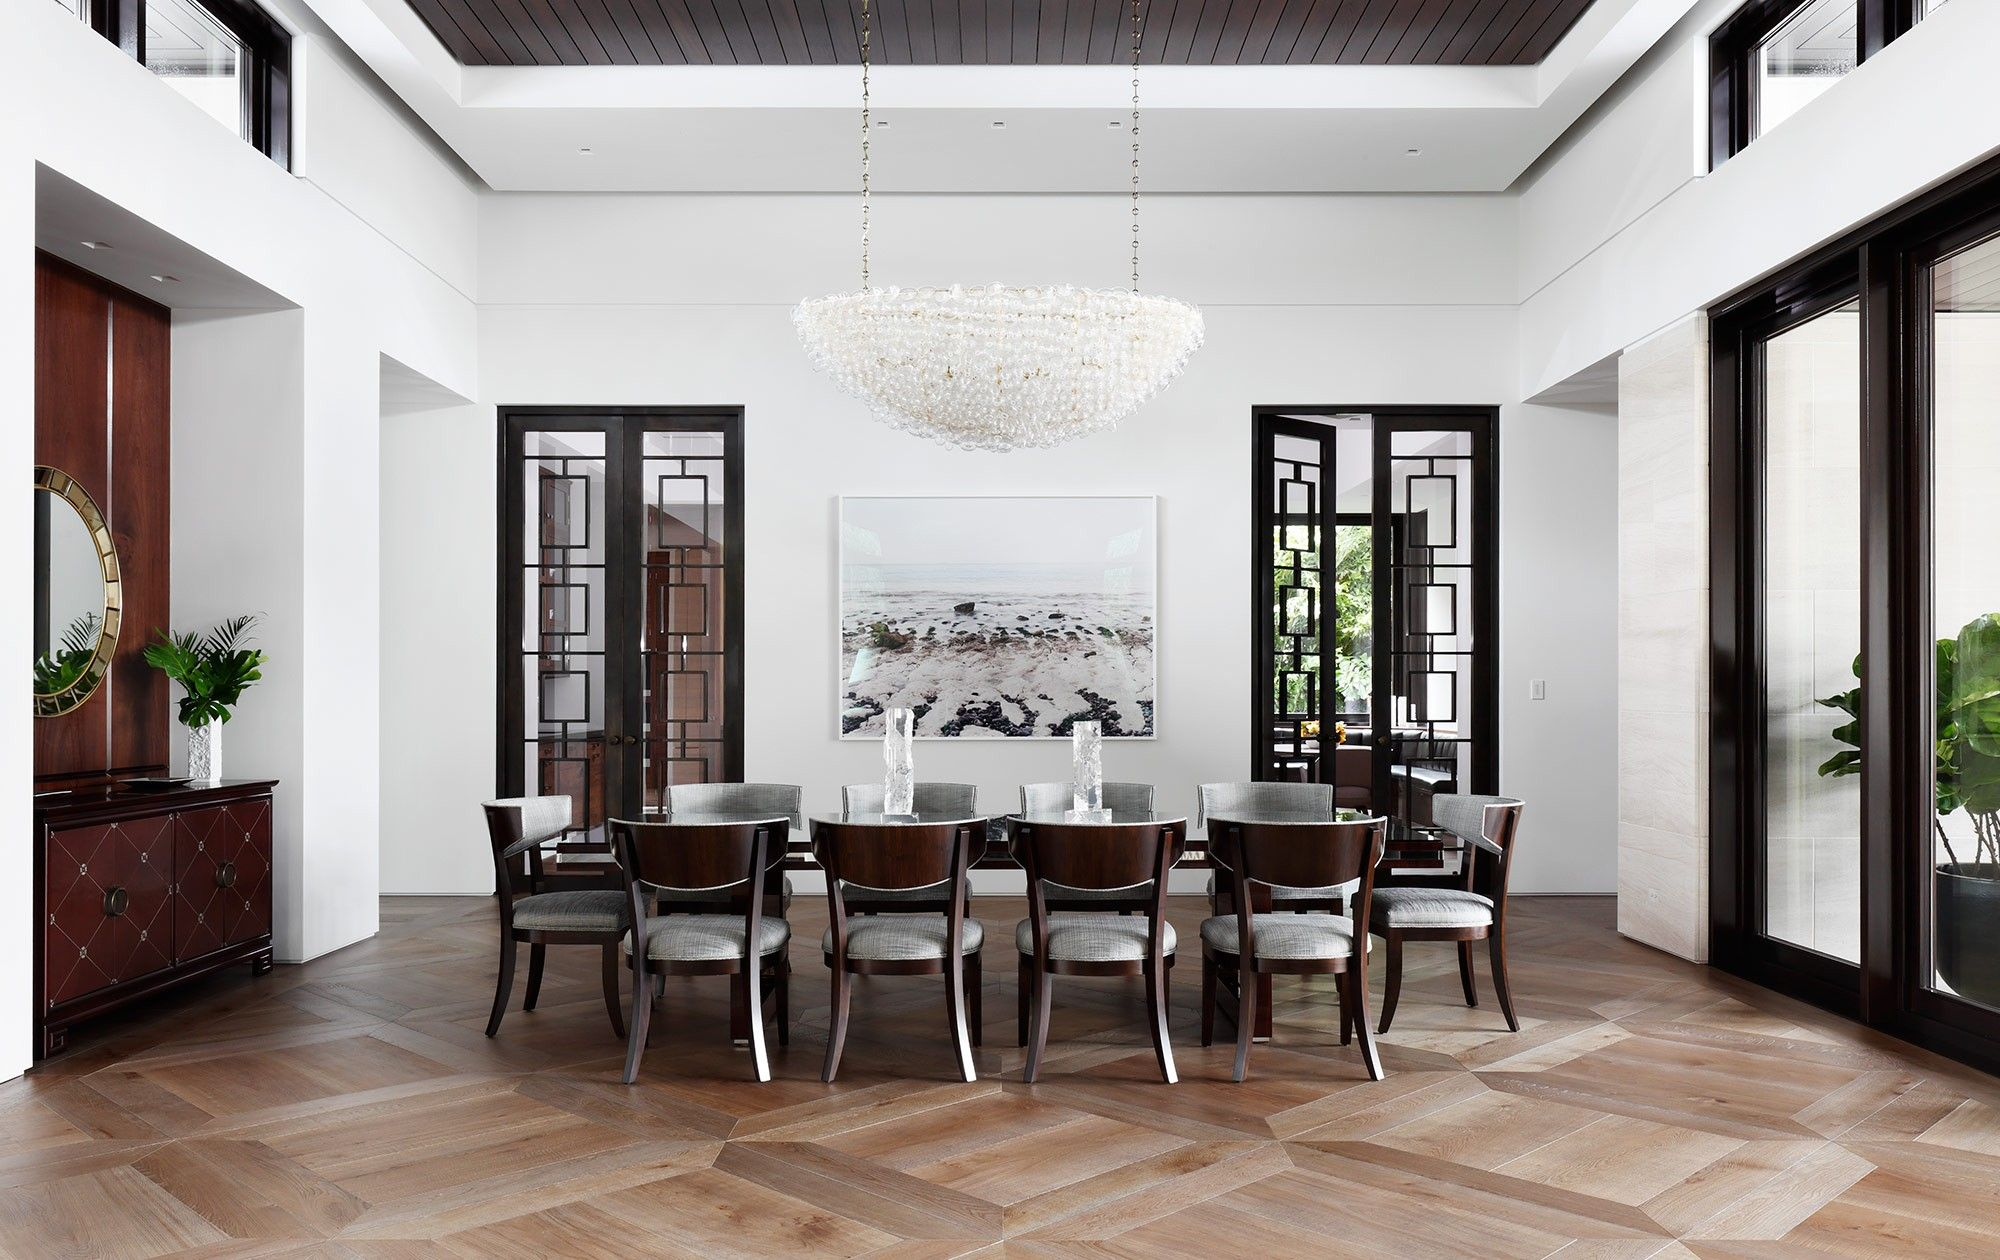 Image Gallery Element7 Dining room interiors, Living